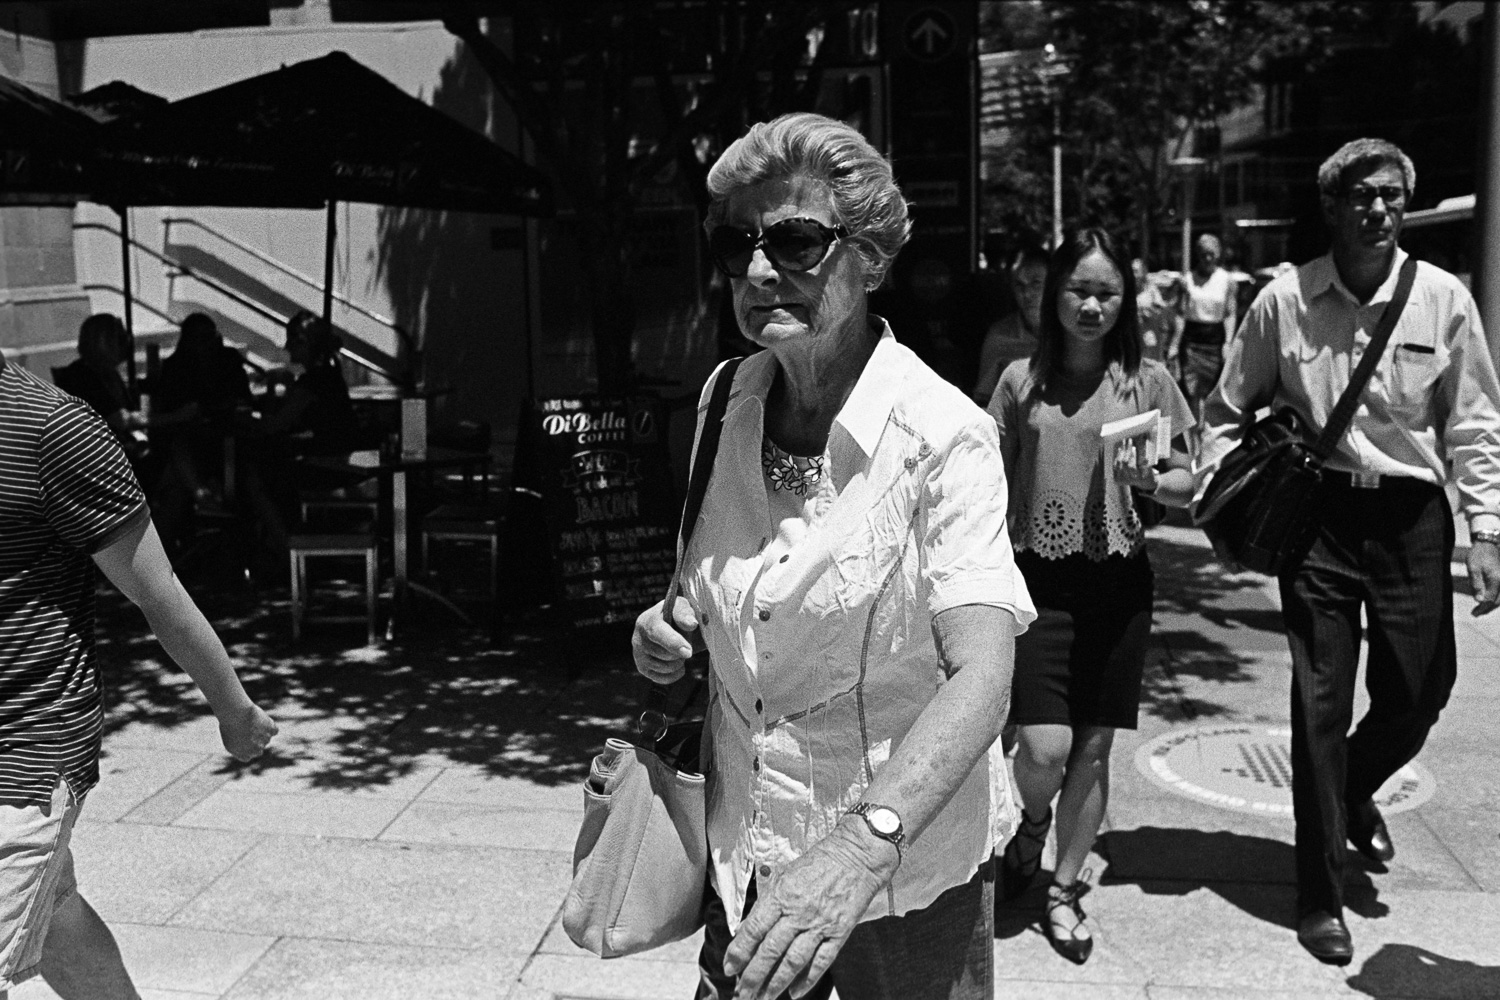 AA013-Nick-Bedford,-Photographer-Black and White, Brisbane, Film, Film Scanning, Kodak Tri-X 400, Nikkor 35mm F2 AI-s, Nikon FA, Pakon F135+, Rodinal, Street Photography, Summer.jpg